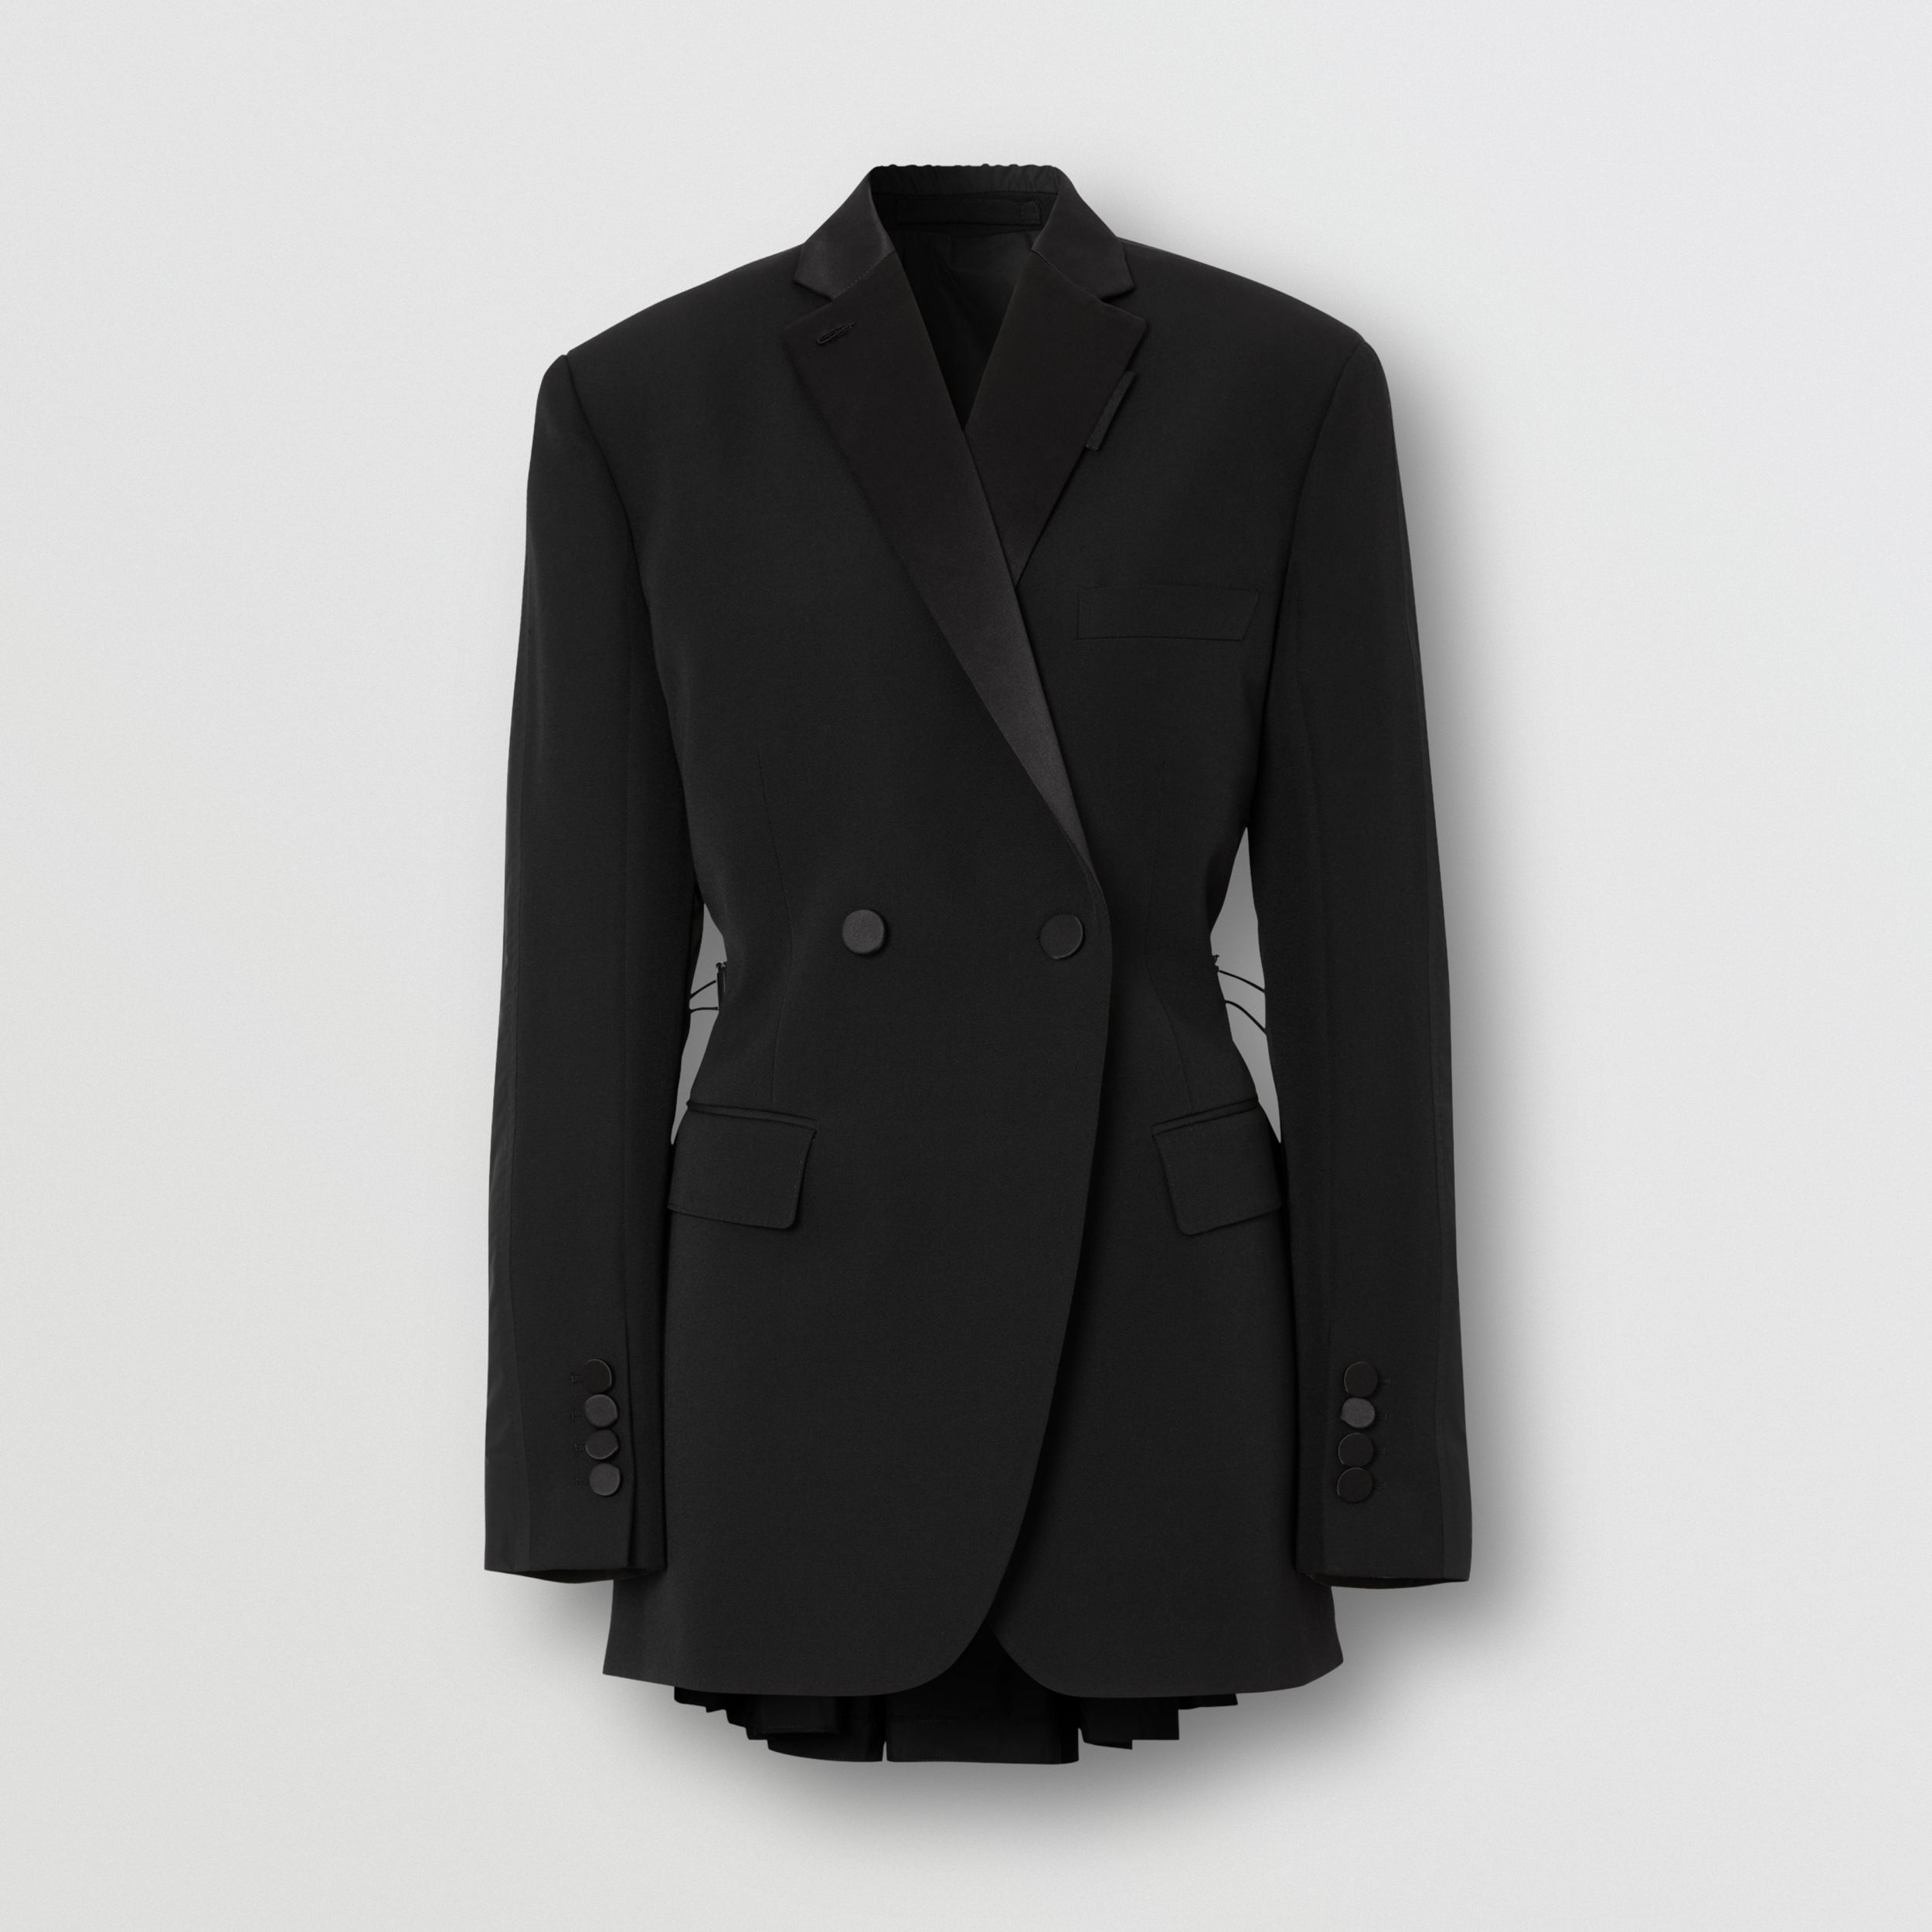 Cut-out Back Wool and Taffeta Tuxedo Jacket in Black - Women | Burberry - 4